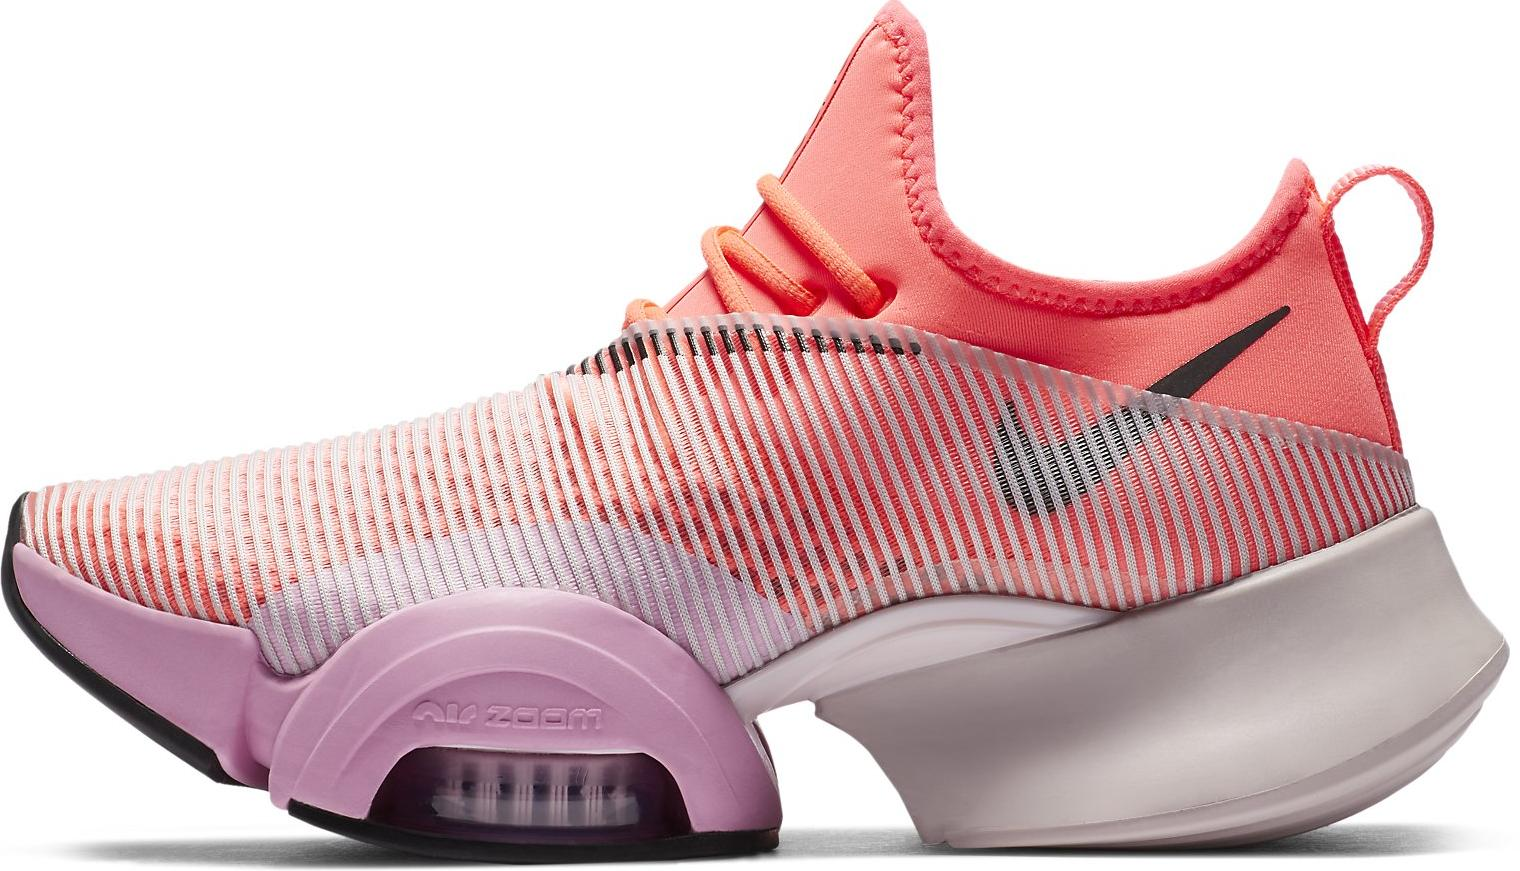 Fitness topánky Nike WMNS AIR ZOOM SUPERREP